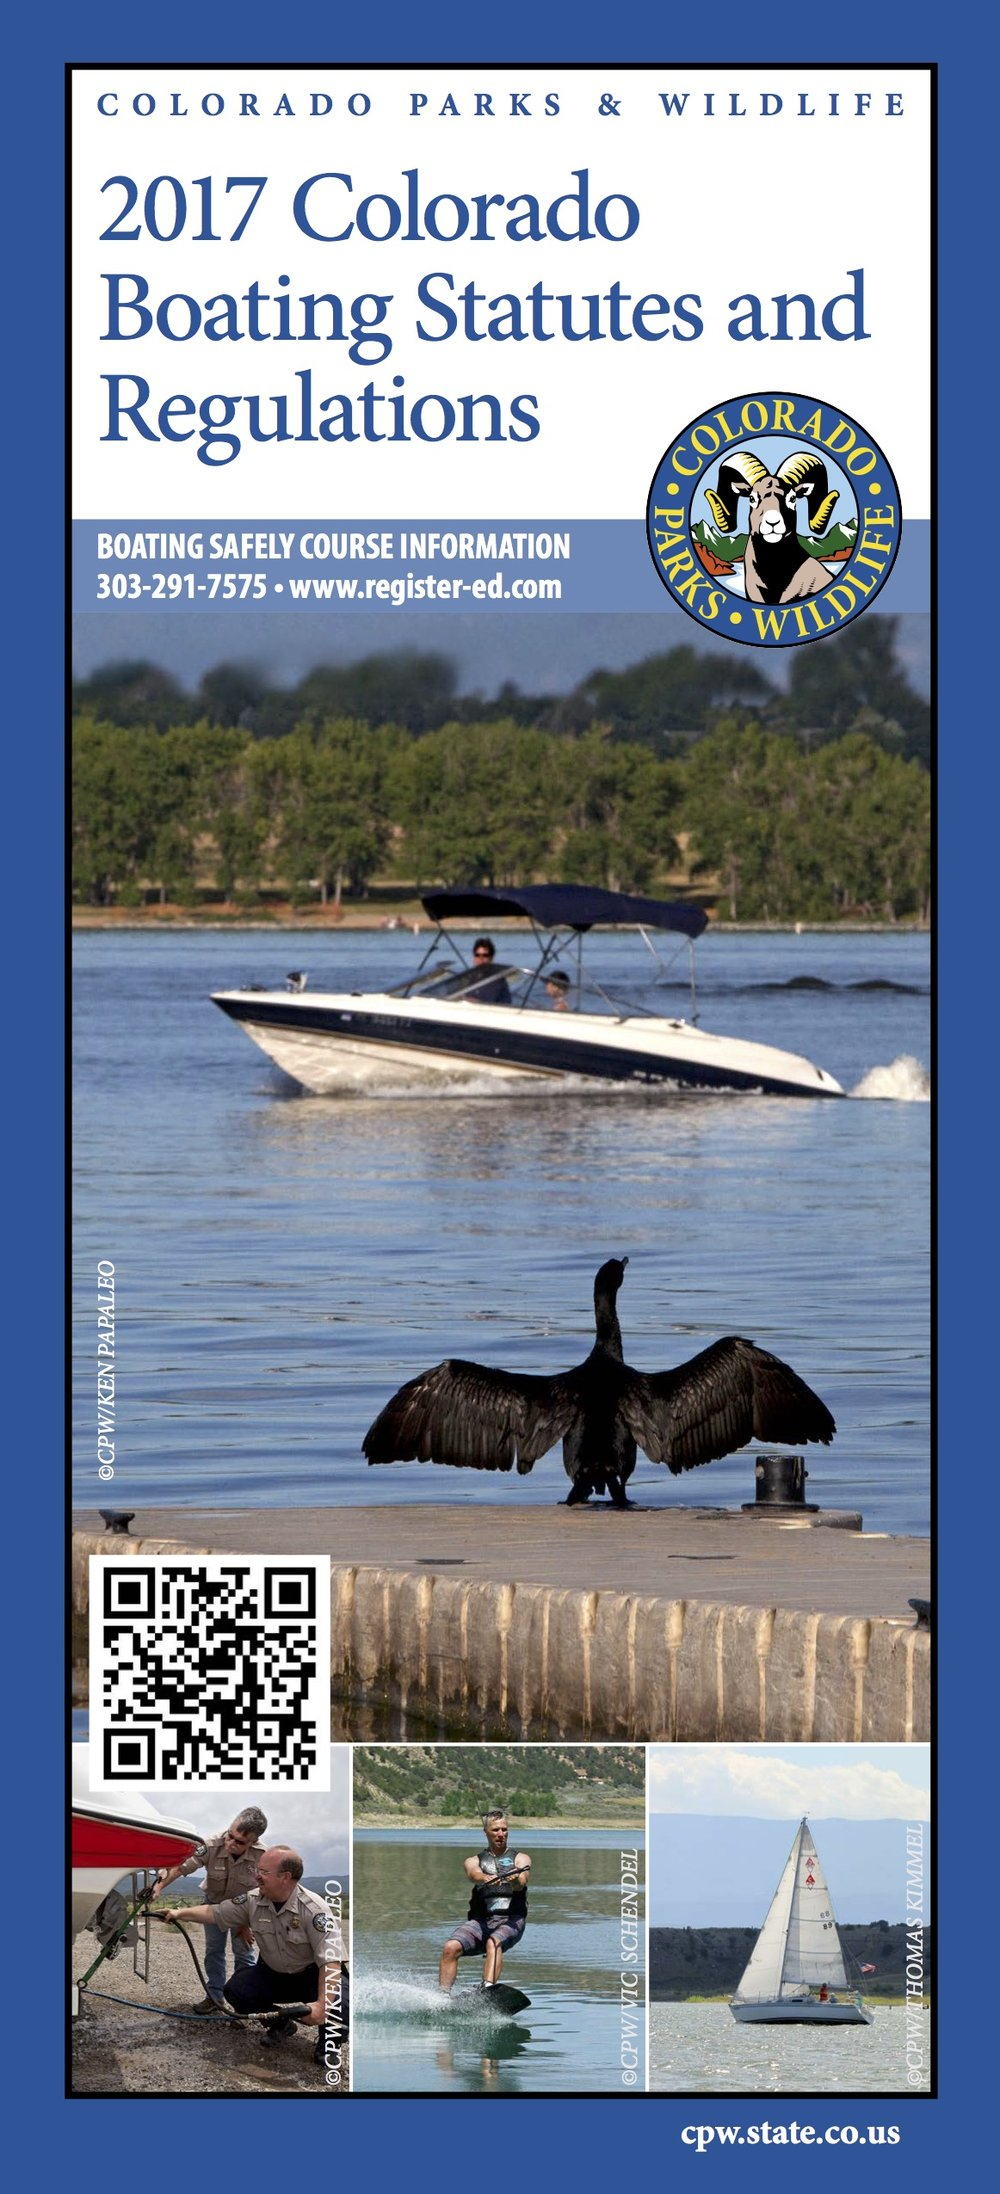 For regulations specific to Colorado, check out the  Colorado Boating Statutes and Regulations.